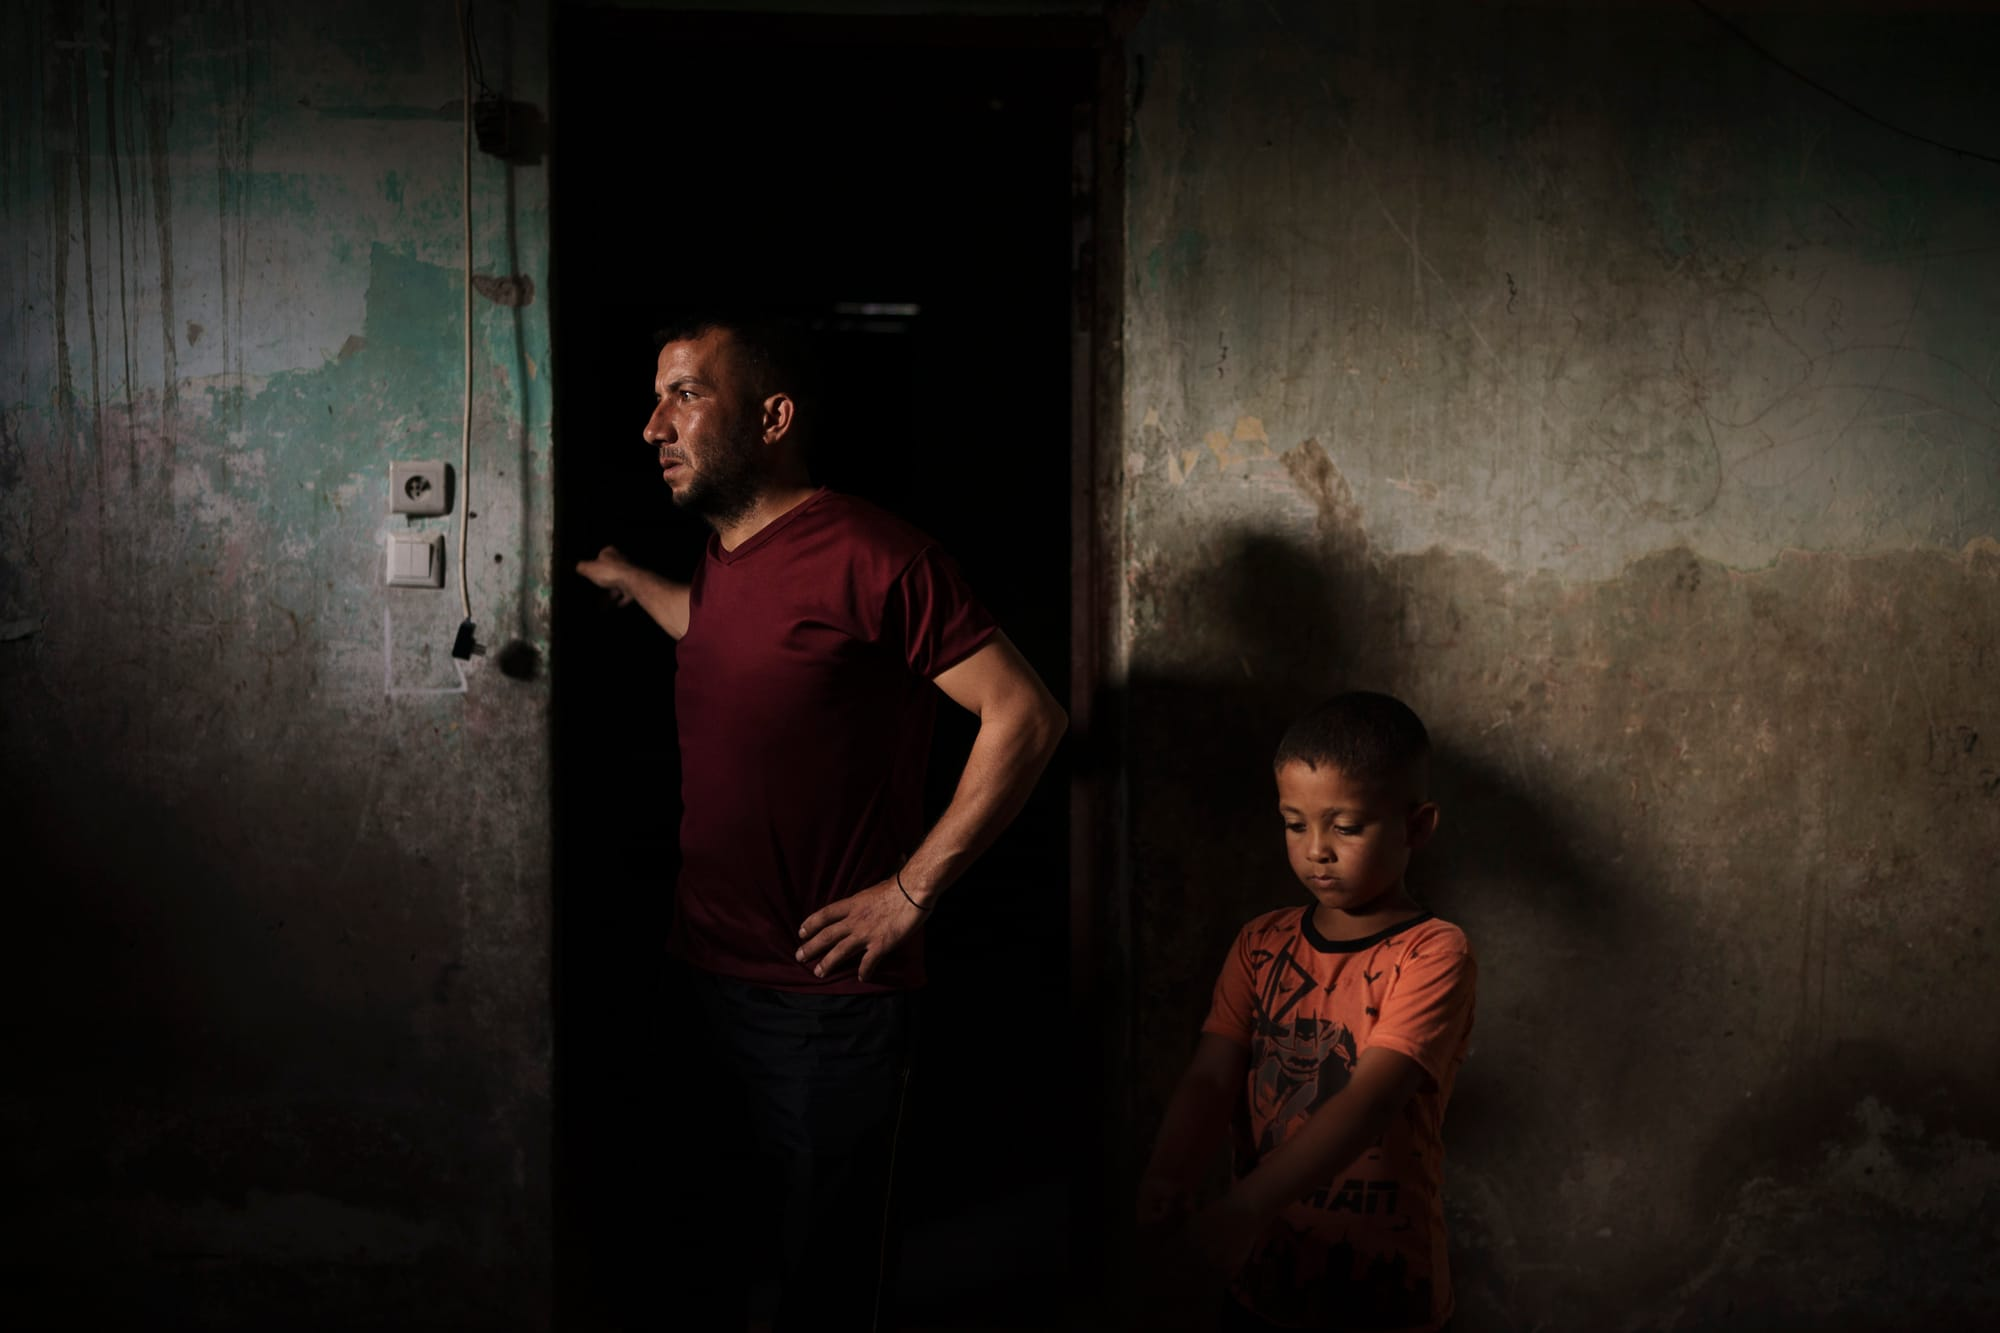 A man stands beside his young son in the doorway of their home in Gaza that had been damaged in an airstrike. Left behind are neighborhoods in shambles and families in mourning.